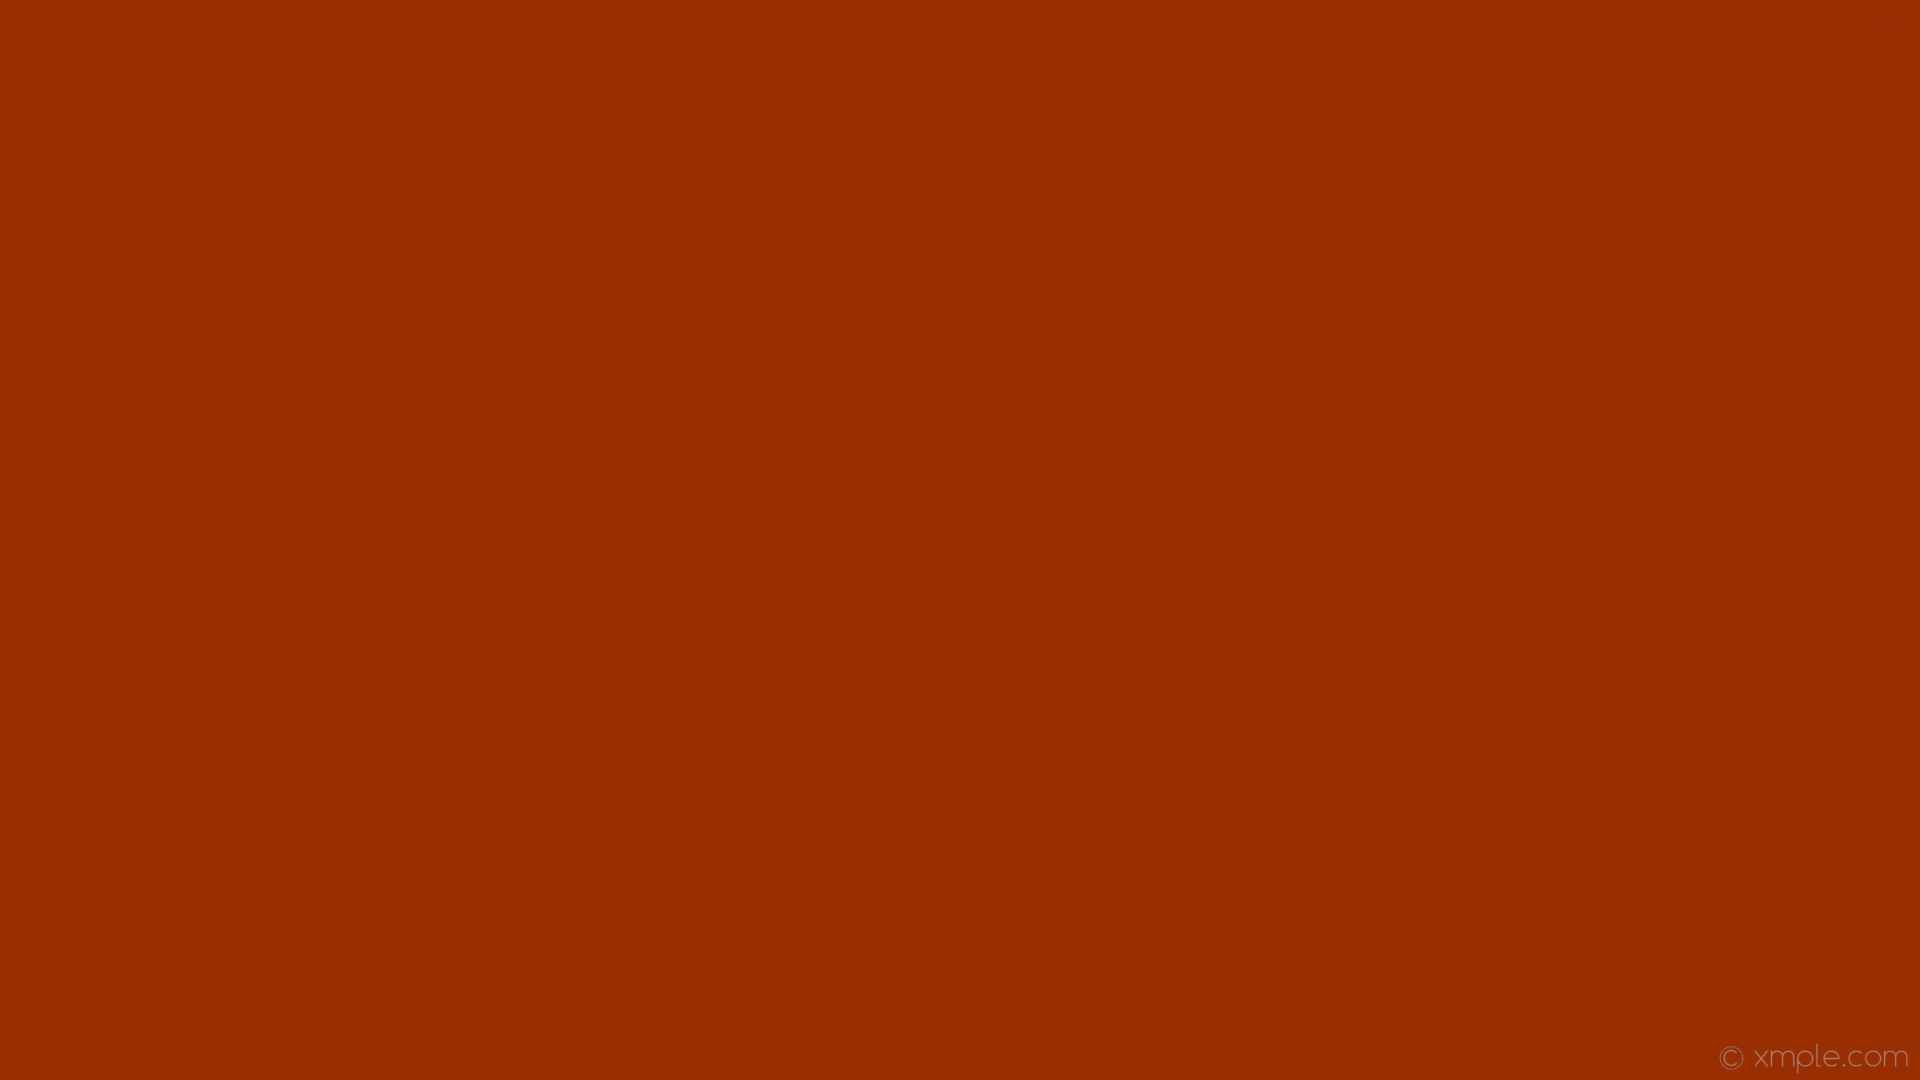 1920x1080 Wallpaper Orange Plain One Colour Solid Color Single 992e01